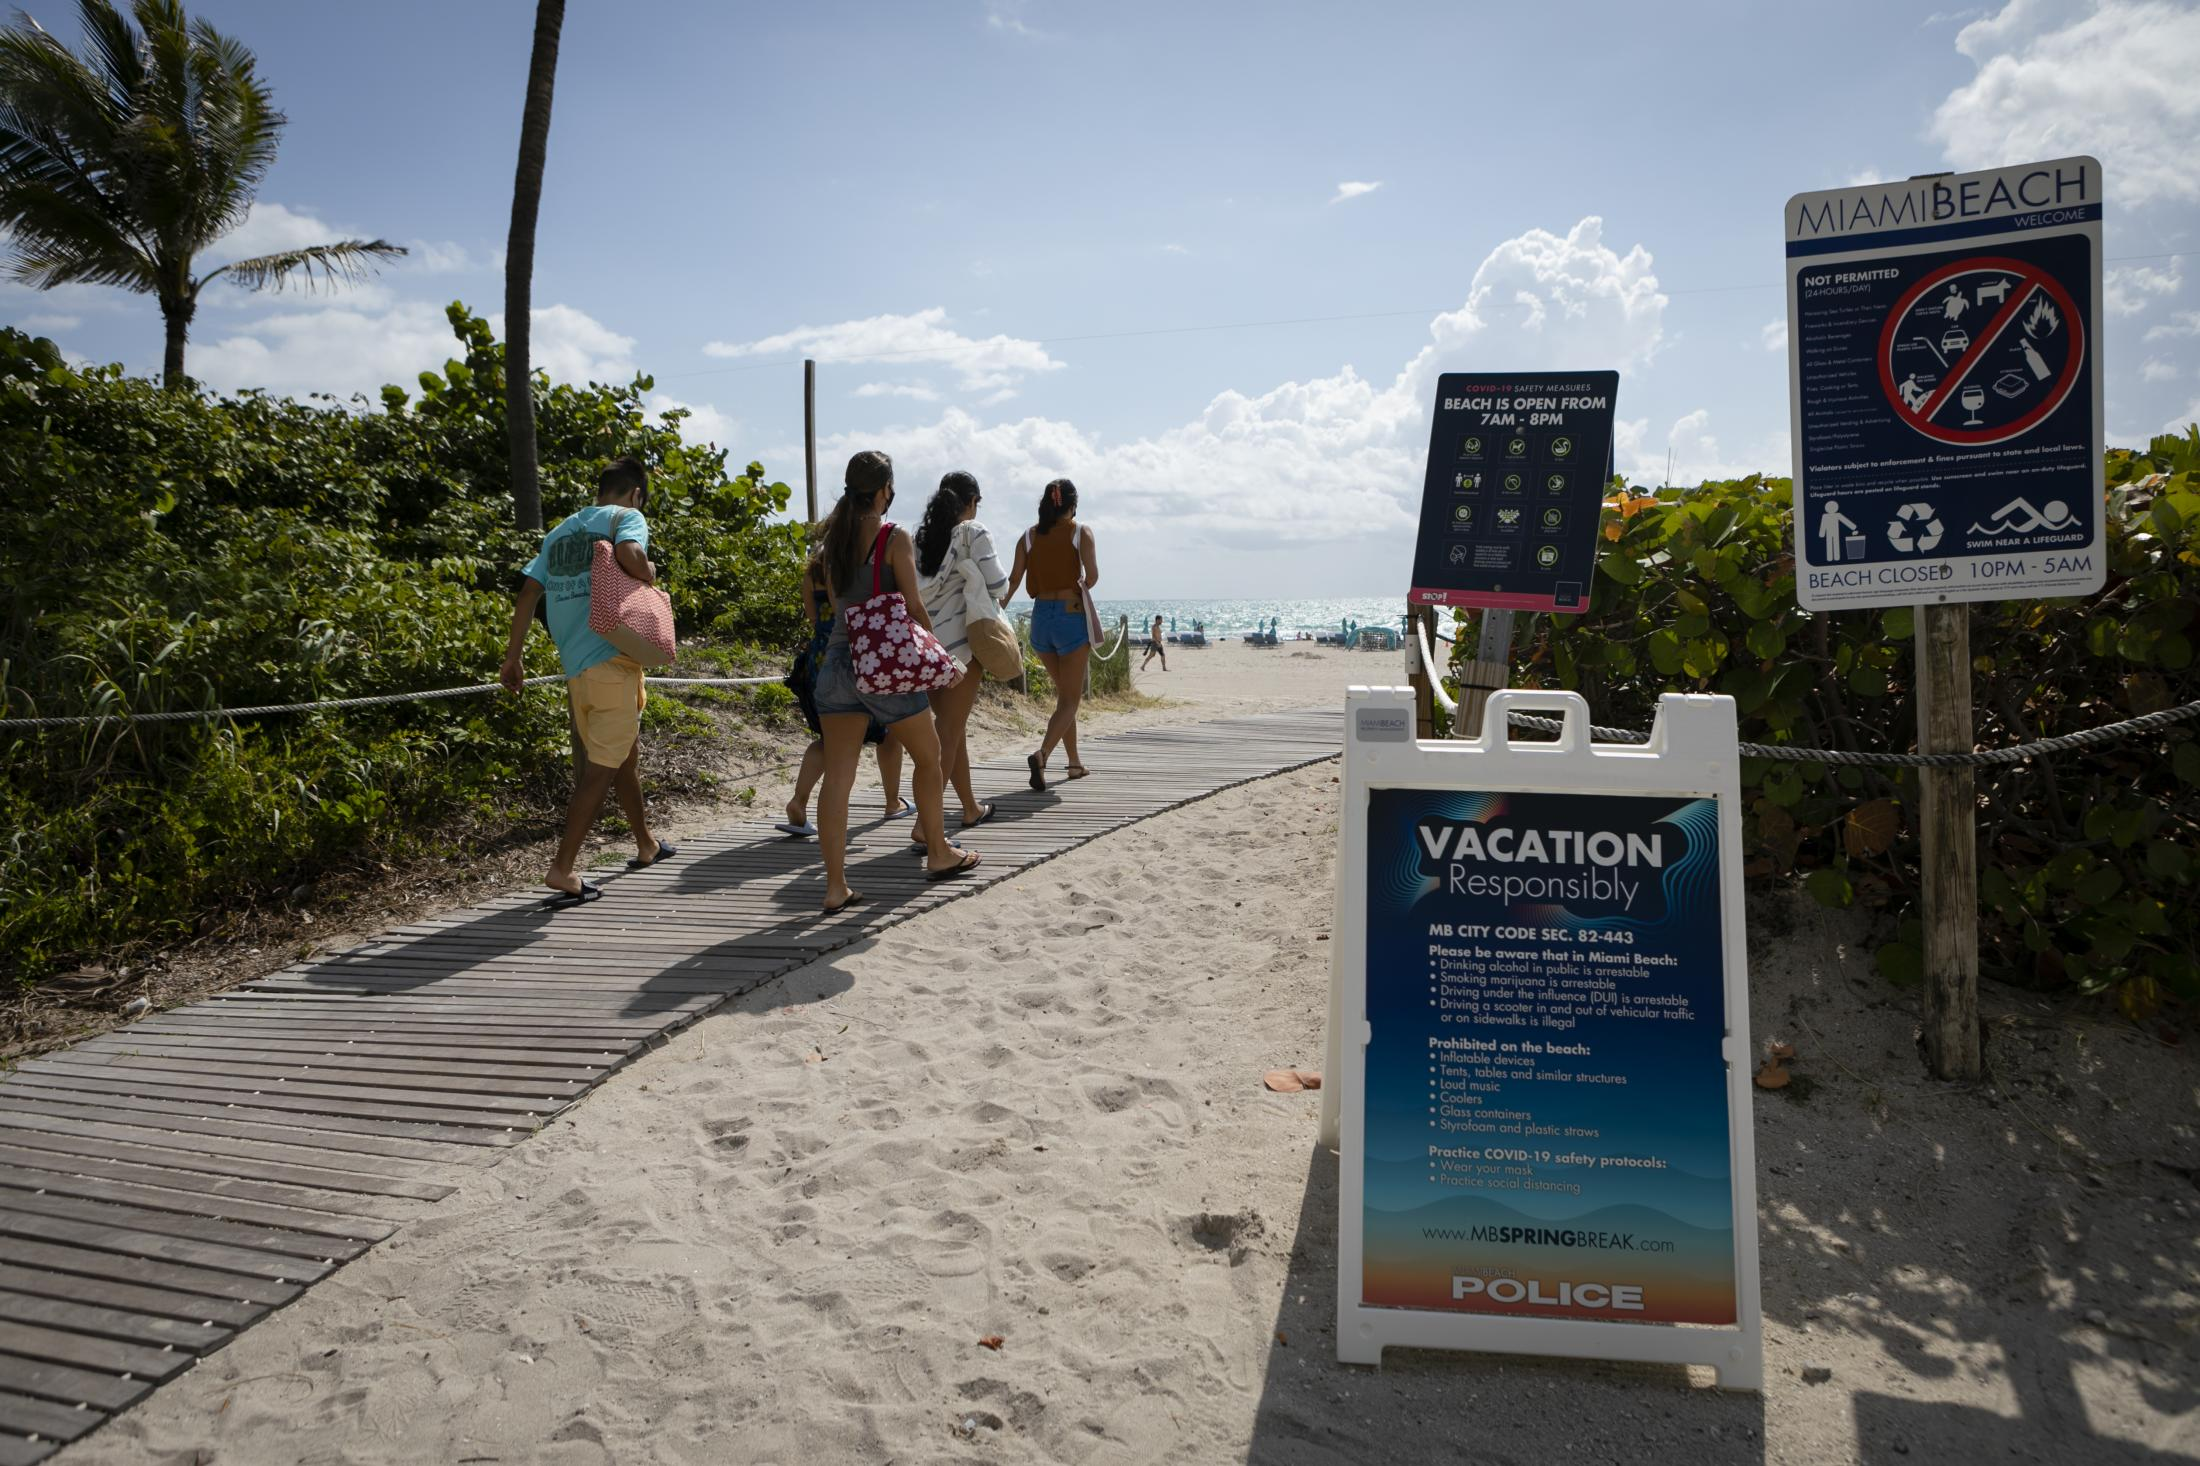 People pass by a sign center about Miami Beach rules at the beach, in South Beach, Florida, on May 9, 2021. Eva Marie UZCATEGUI / AFP